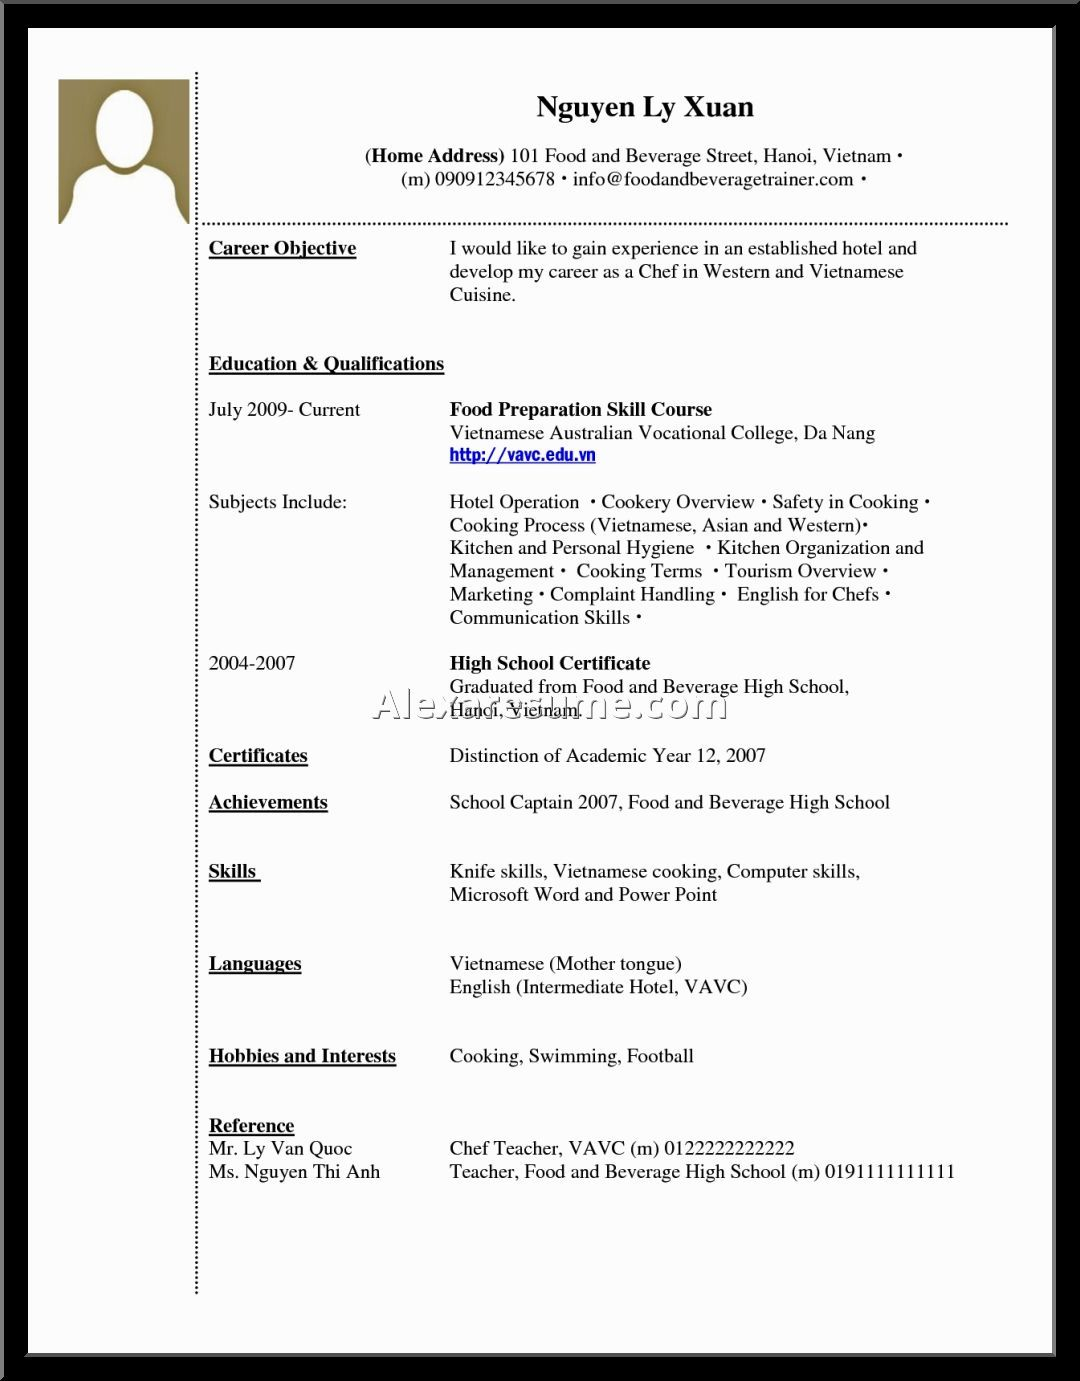 sample resume high school grad experience cover letter for college graduate with medical administrative assistant. Resume Example. Resume CV Cover Letter